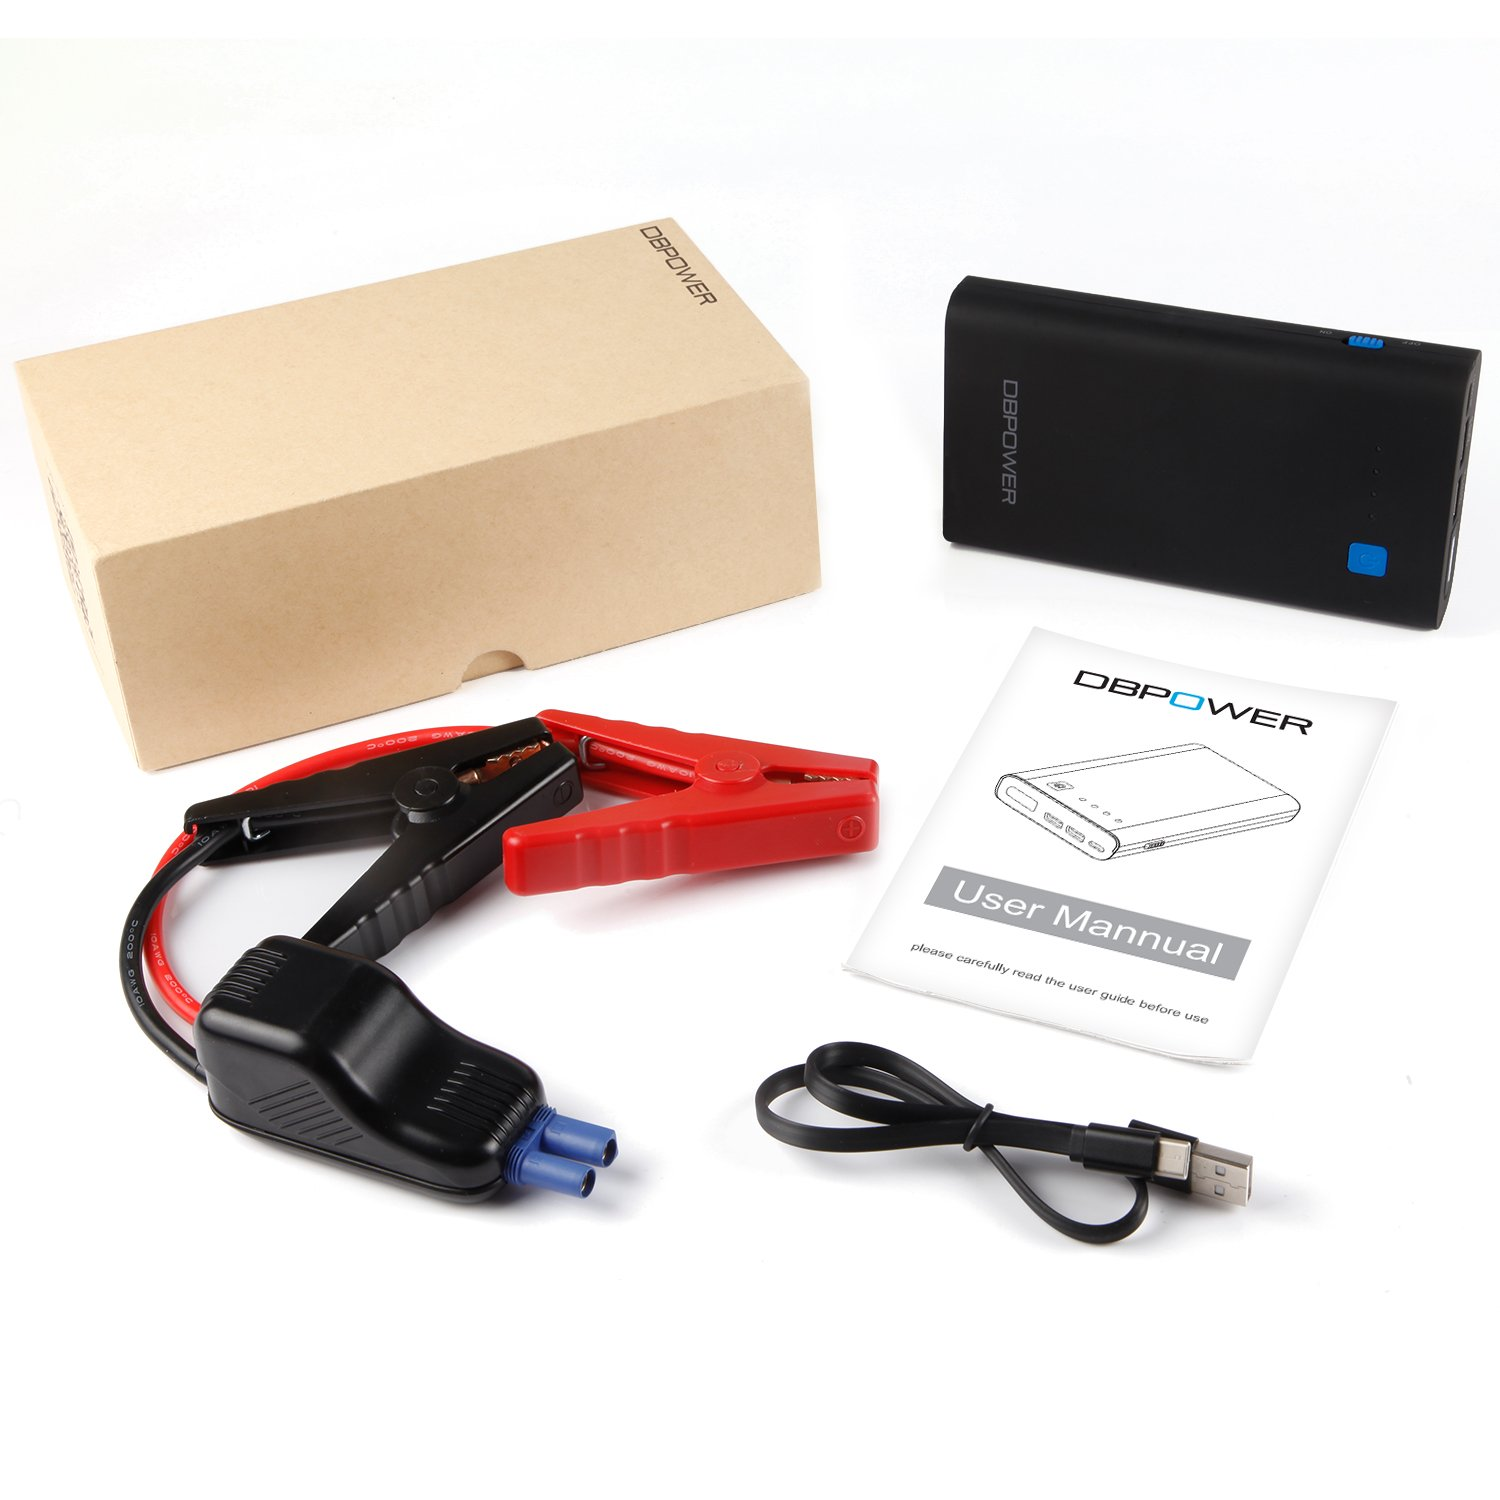 Auto Battery Booster DBPOWER 500A 10800mAh Portable Car Jump Starter up to 3.0L Gas// 2.0L Diesel Engine Portable Phone Charger with QC3.0 LED Flashlight with 3 Modes Type-C Output